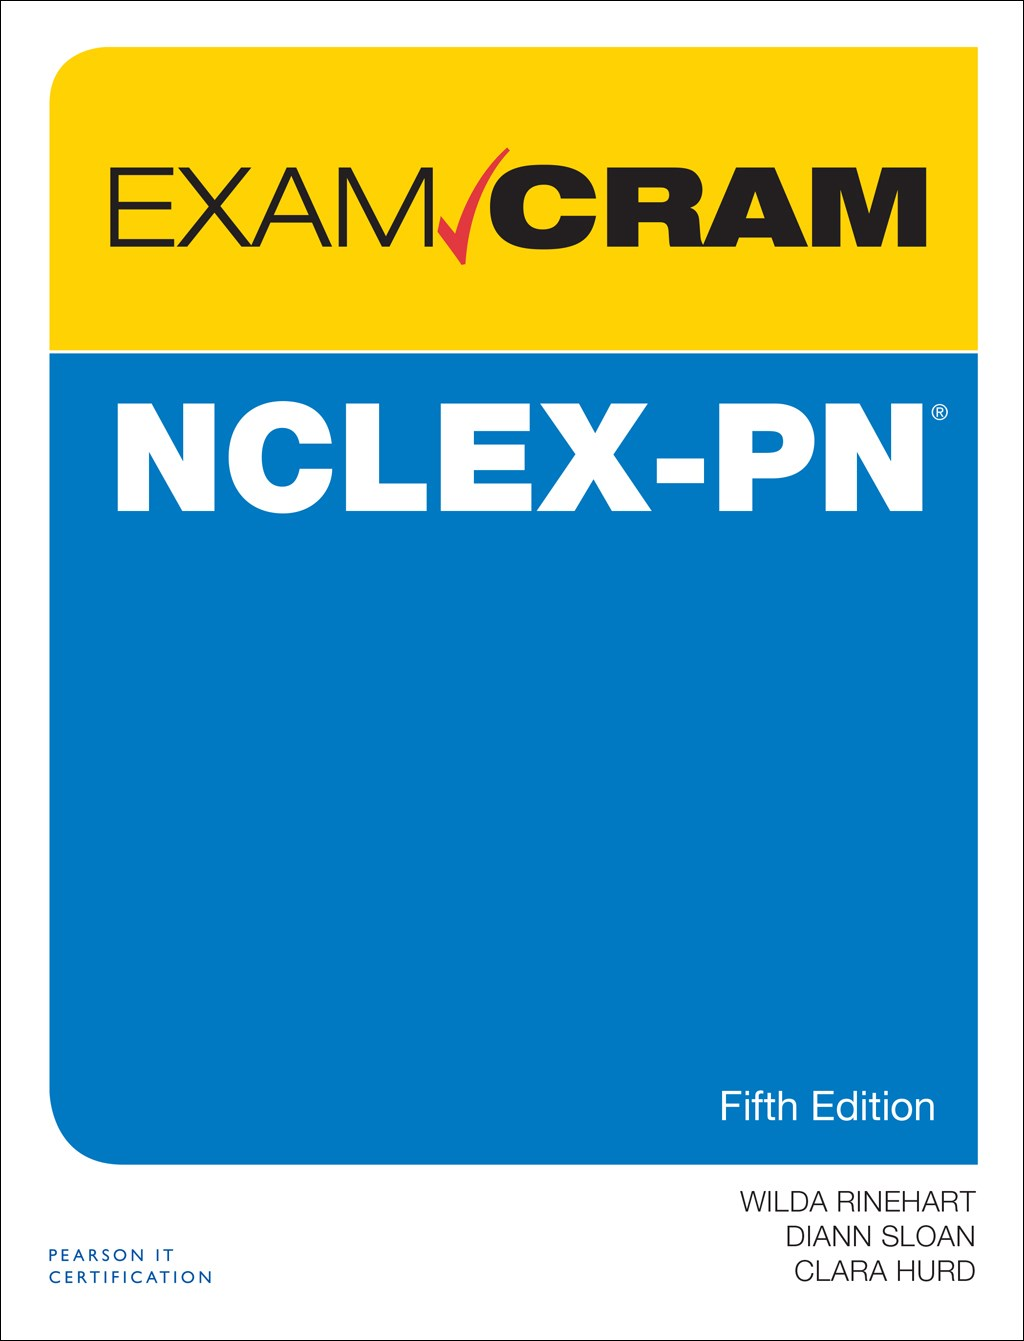 NCLEX-PN Exam Cram, 5th Edition